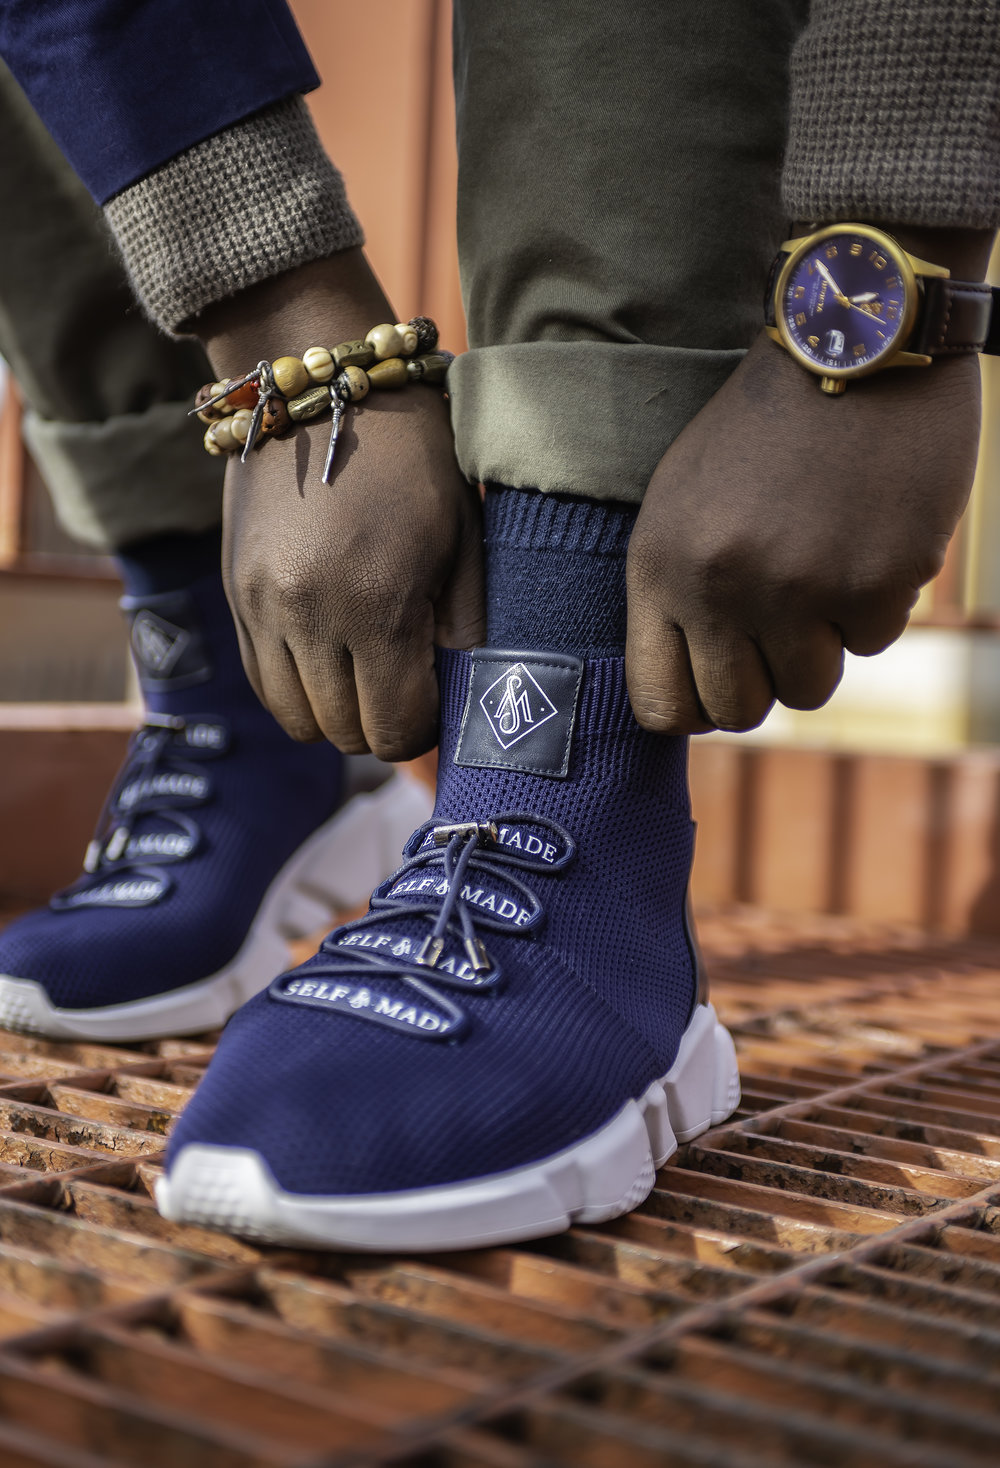 Exclusive - Self-Made Custom Menswear Founders, Brandon and Aime, personally designed this founders approved navy blue and white color edition shoe. Self-Made will only produce a limited amount of The Debuts. These shoes are very rare and exclusive so claim yours now.